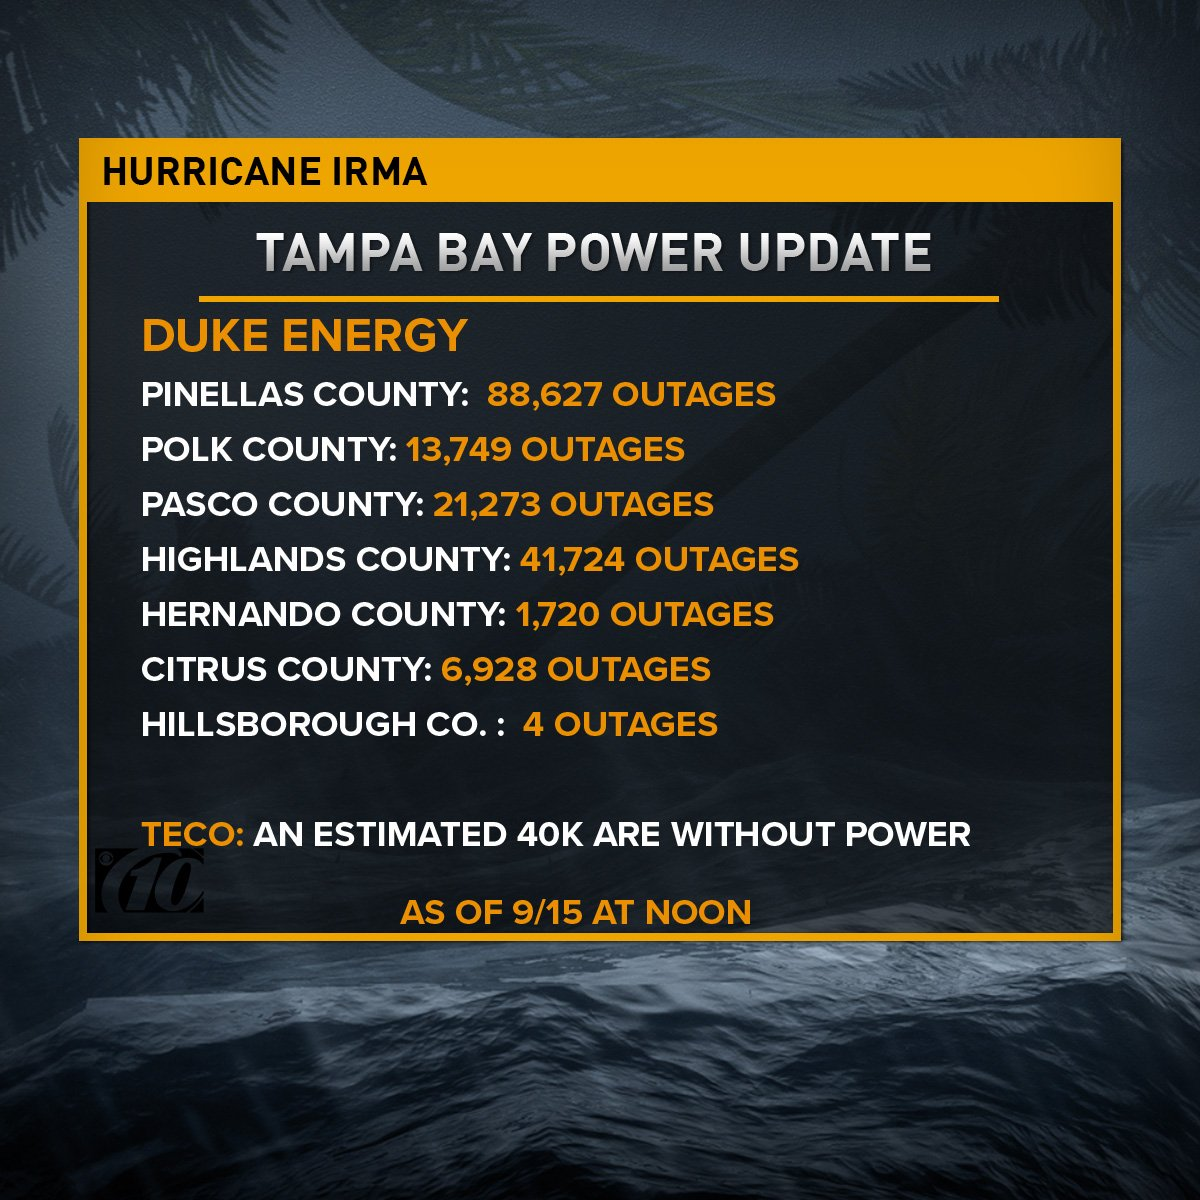 Power update as of noon today  https://t.co/CkNwJwUbPj #hurricaneirma2017